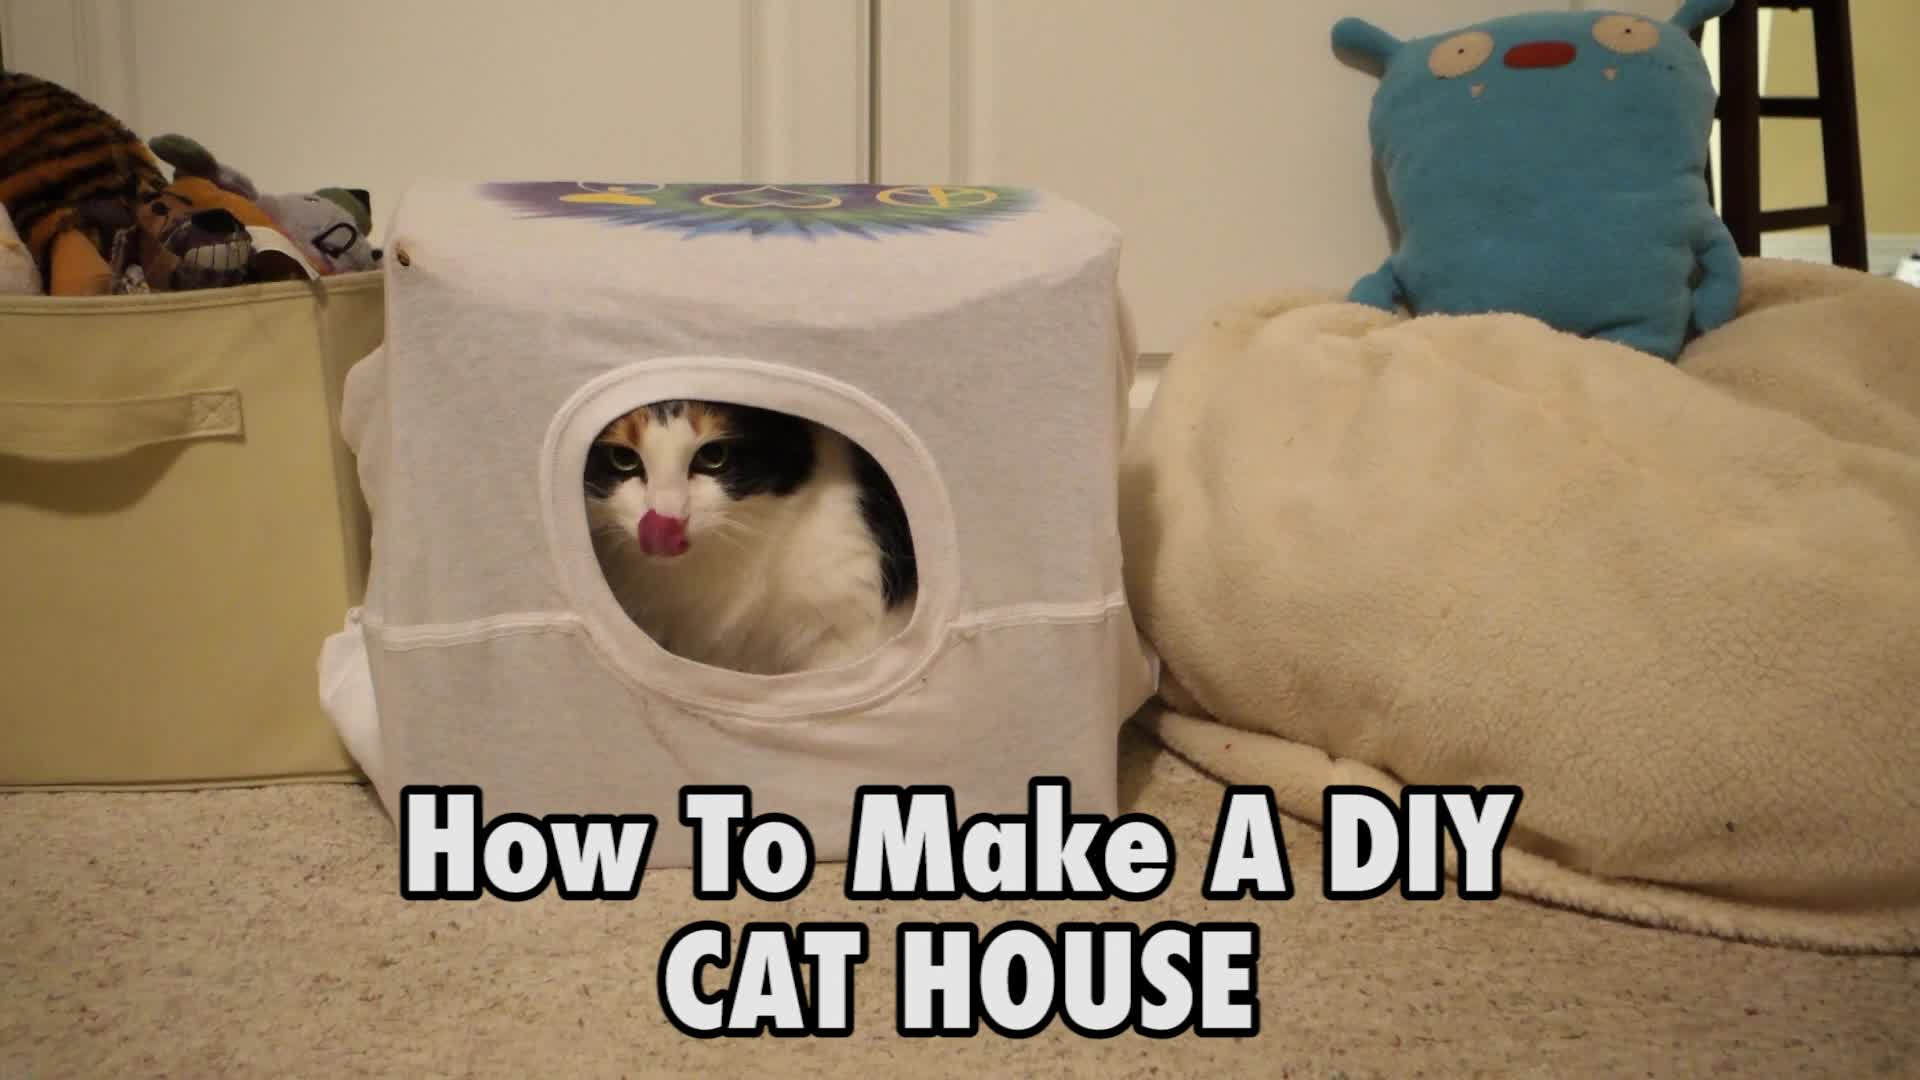 How to avoid cats in the house